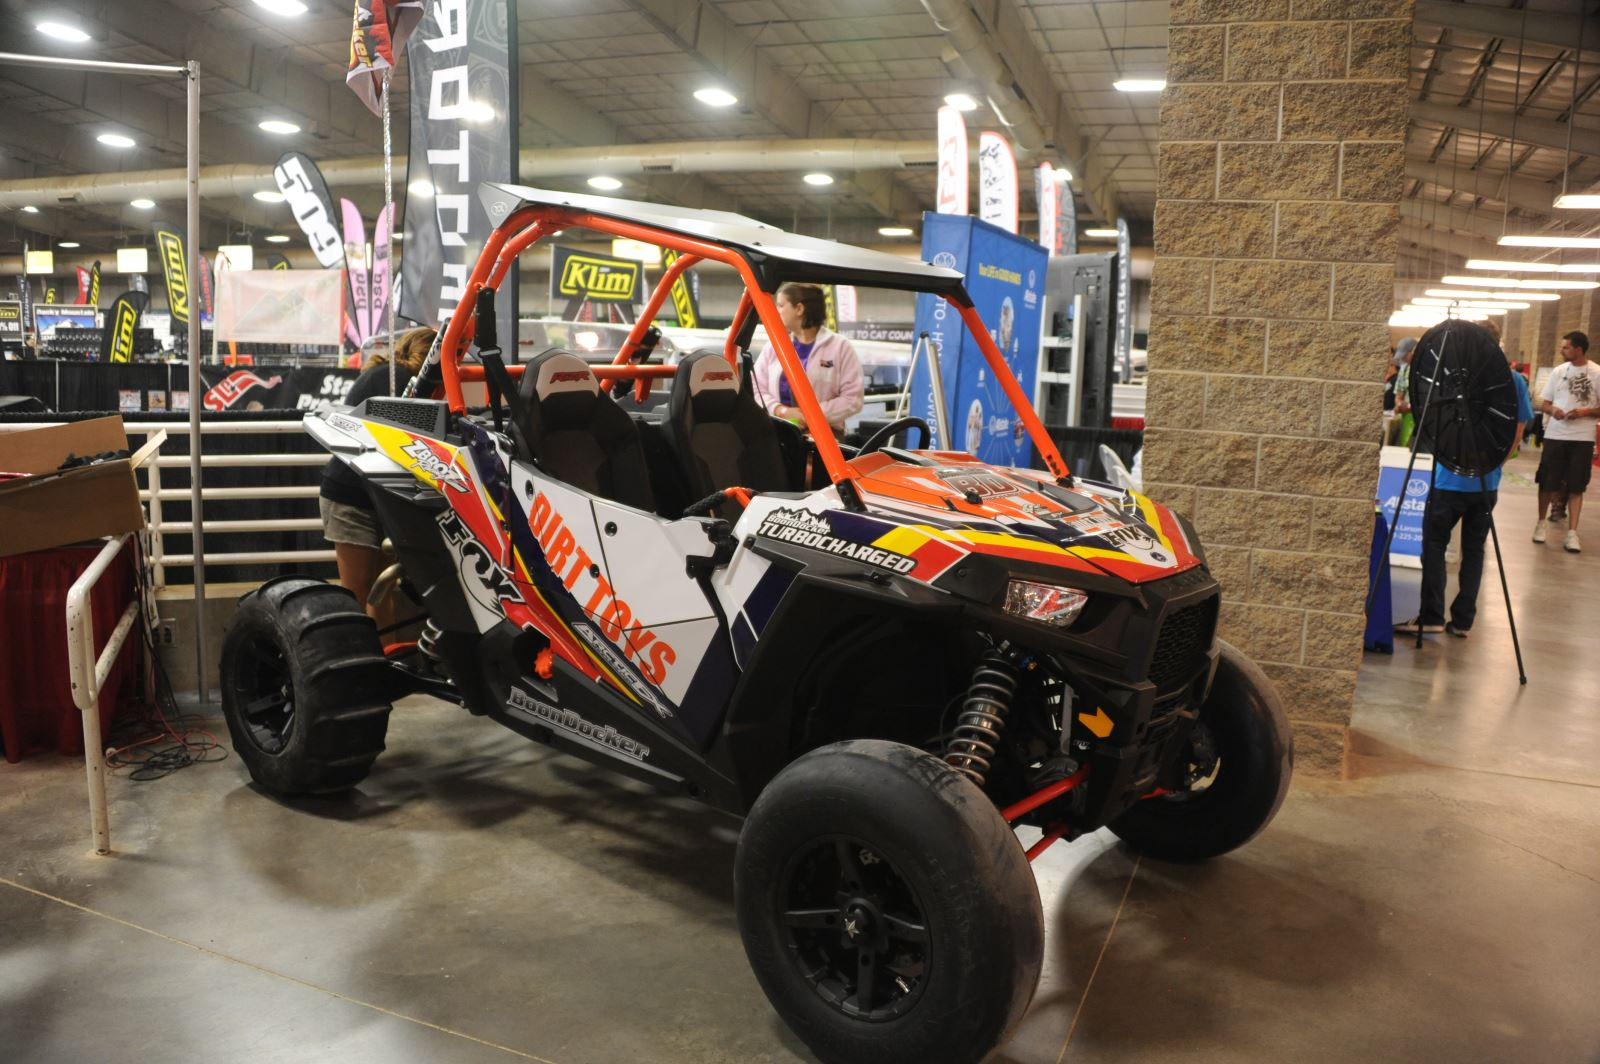 Getting Revved Up For Winter Intermountain Snowmobile Show